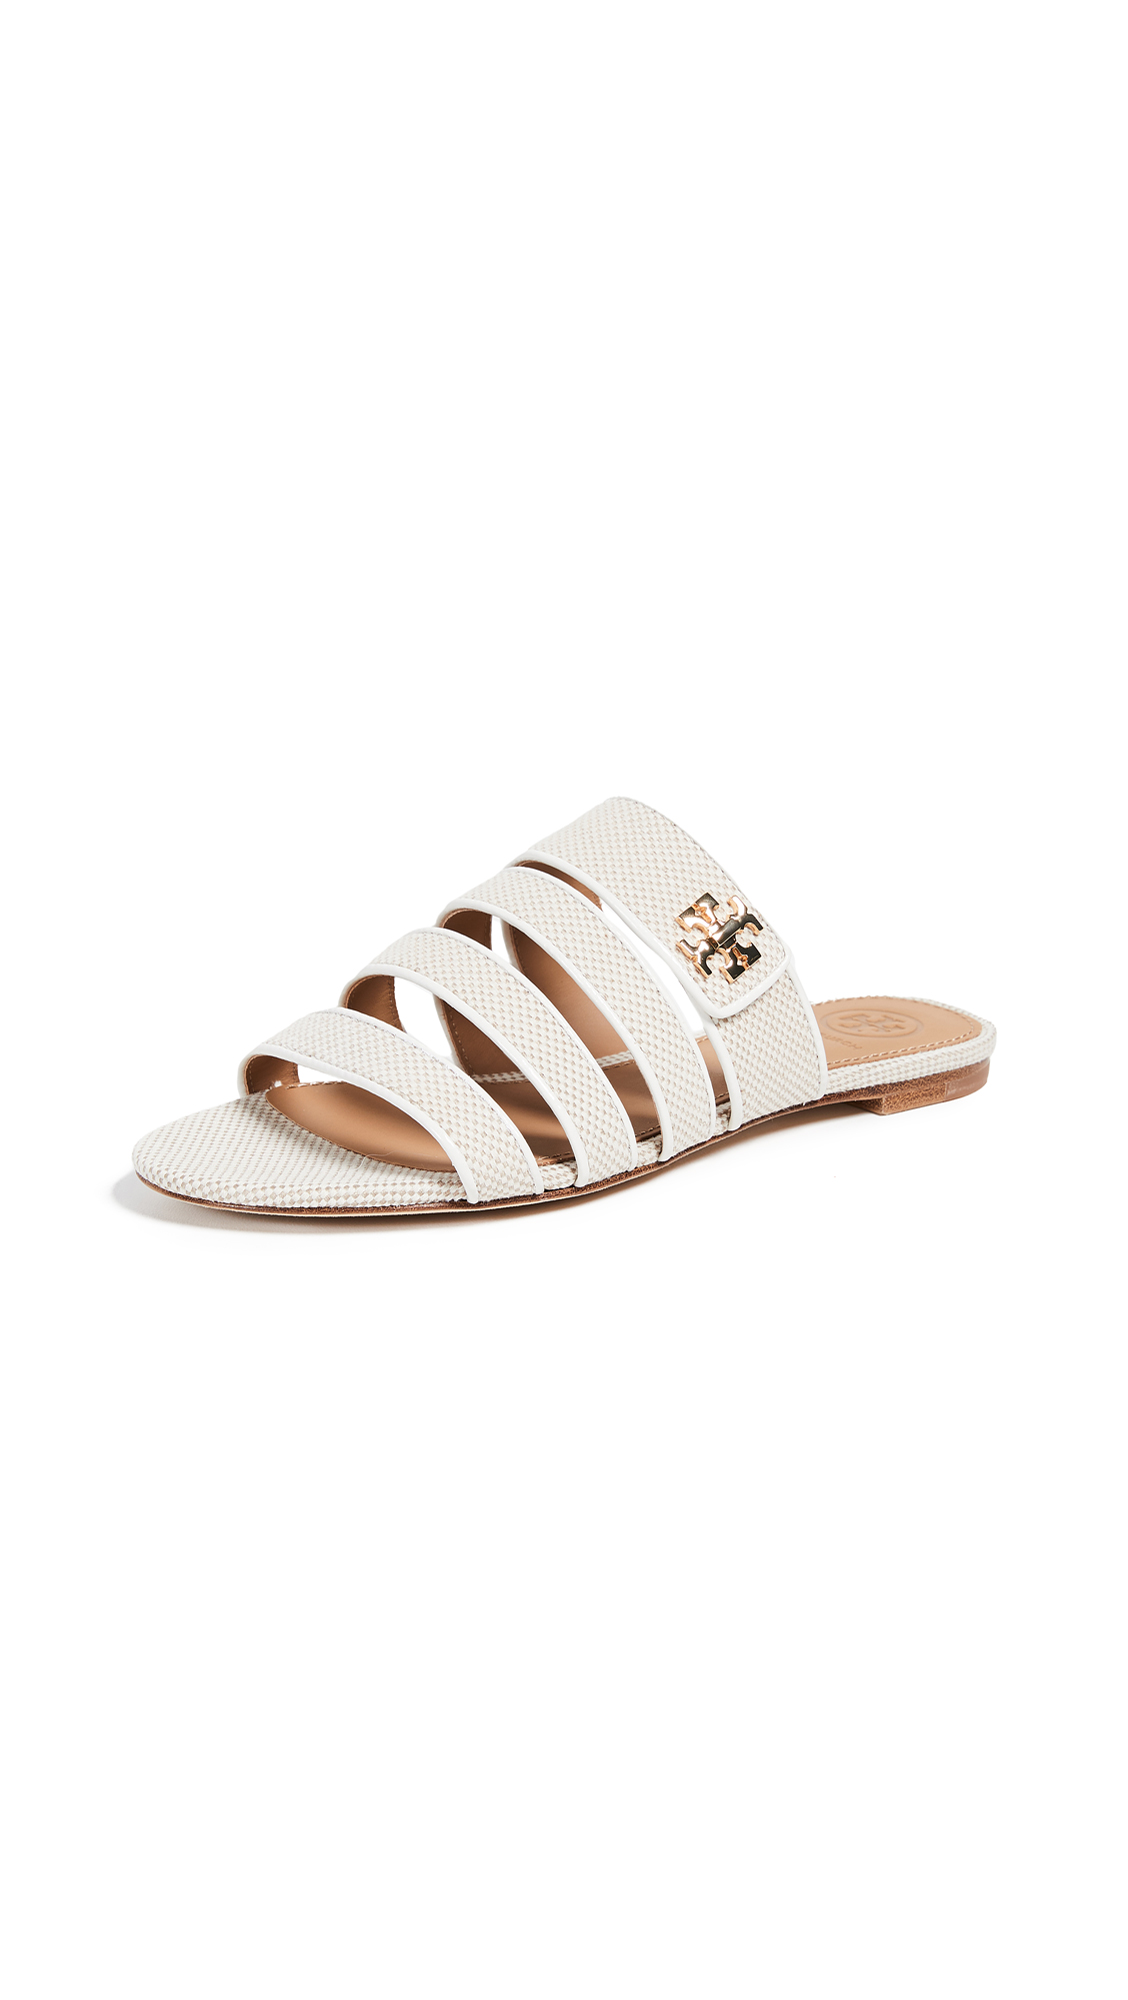 Tory Burch Kira Multiband Sandals - Natural/Perfect Ivory